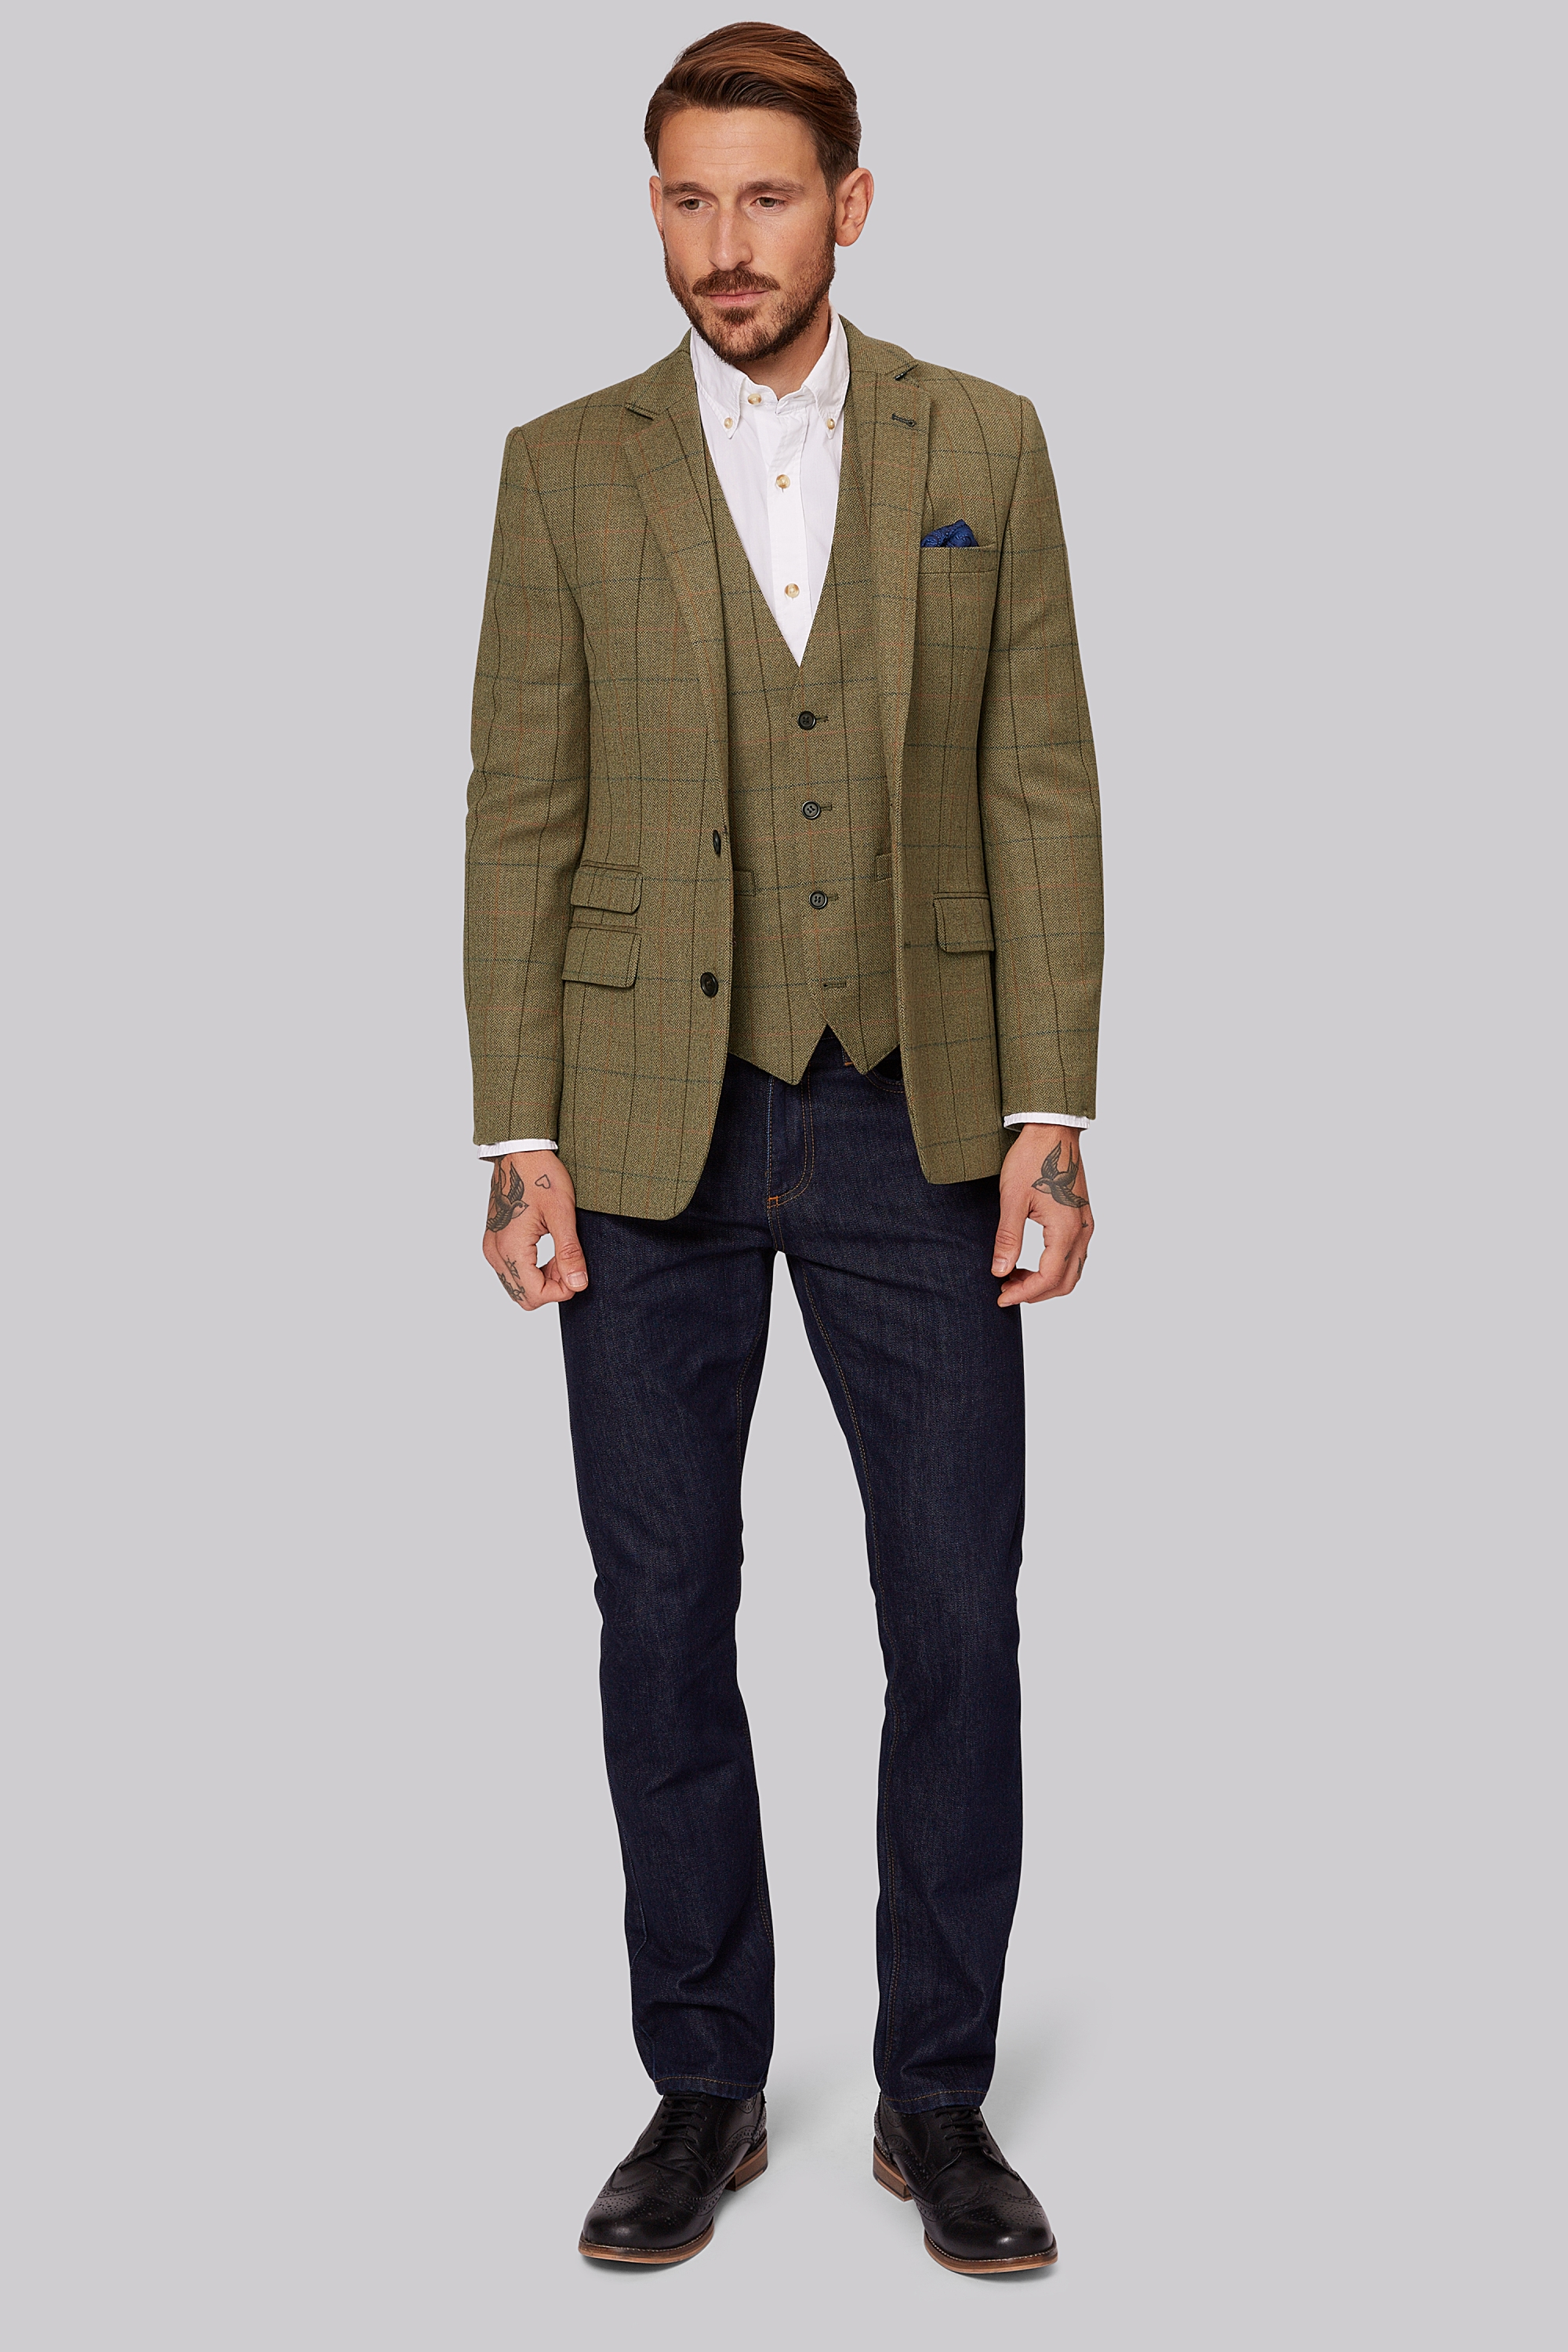 Check and Tweed Style Jackets & Blazers | Moss Bros